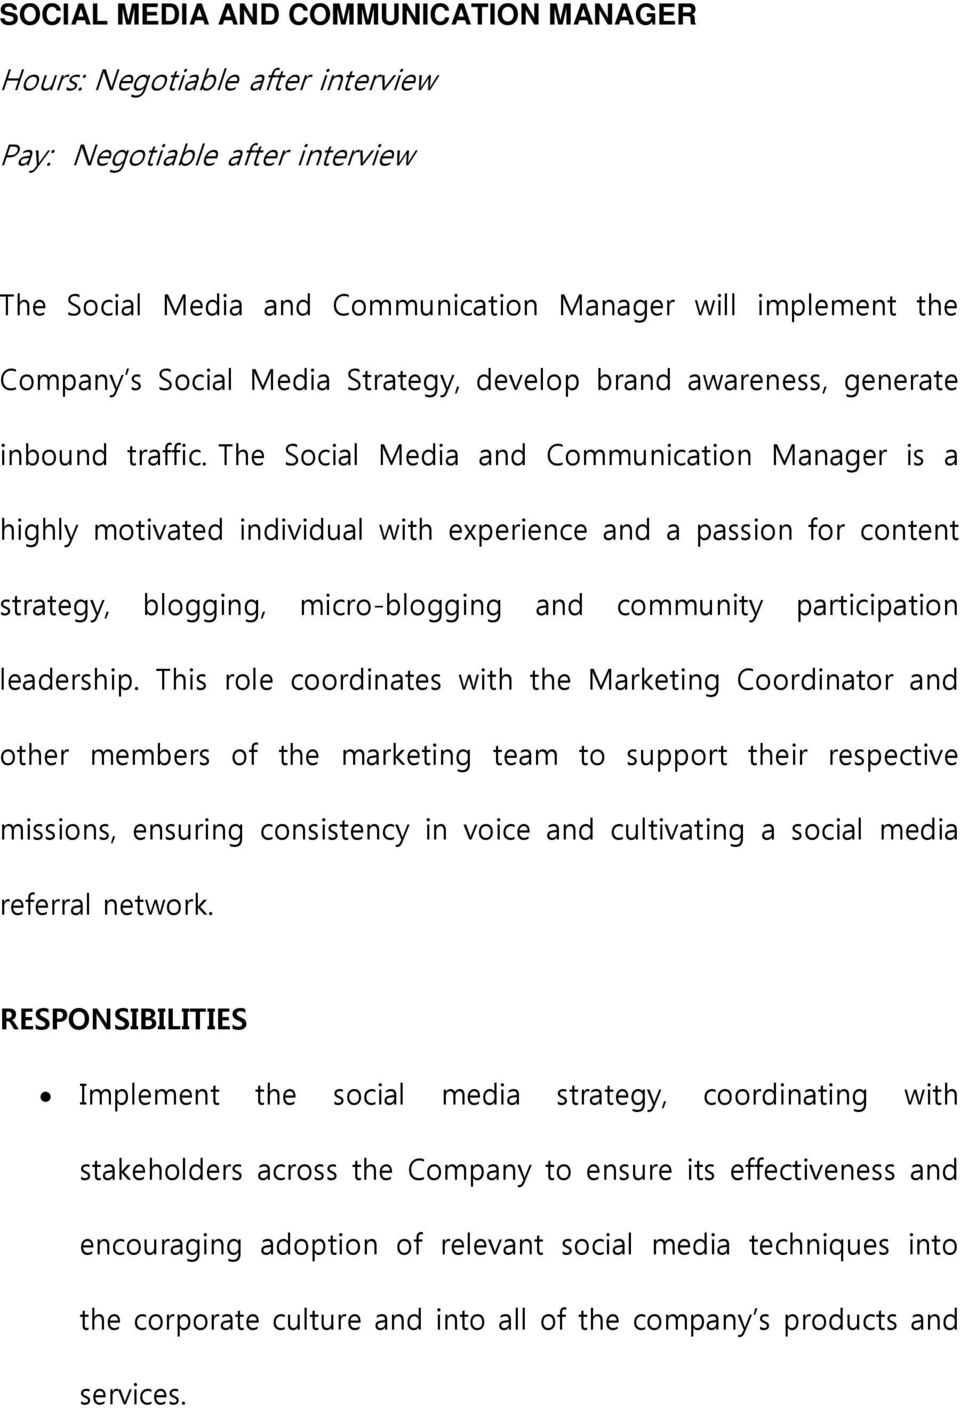 The Social Media and Communication Manager is a highly motivated individual with experience and a passion for content strategy, blogging, micro-blogging and community participation leadership.